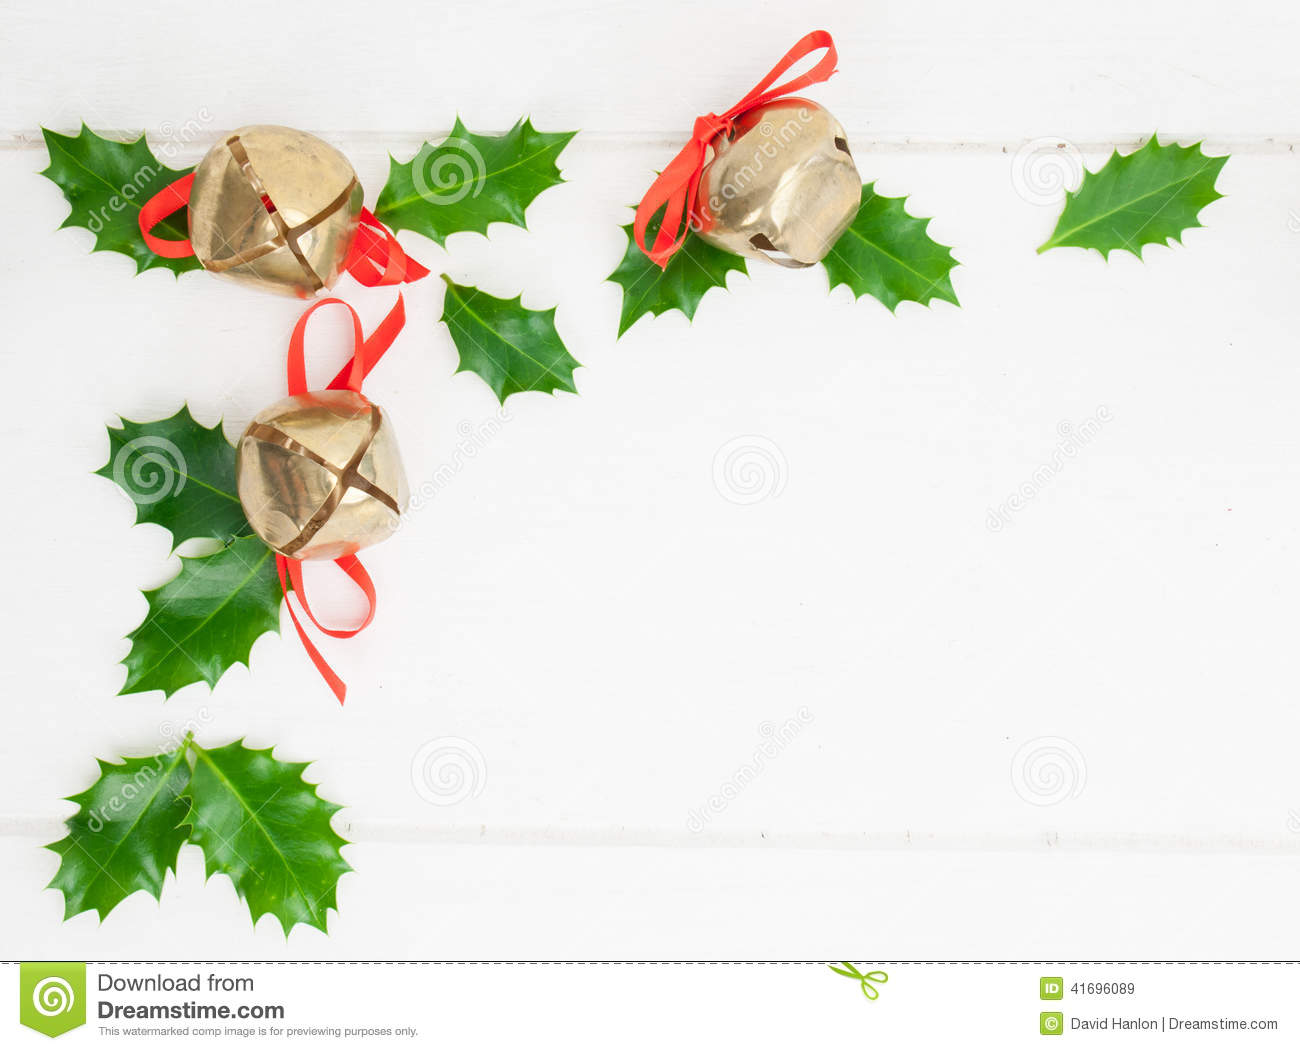 HD wallpapers pictures of christmas holly